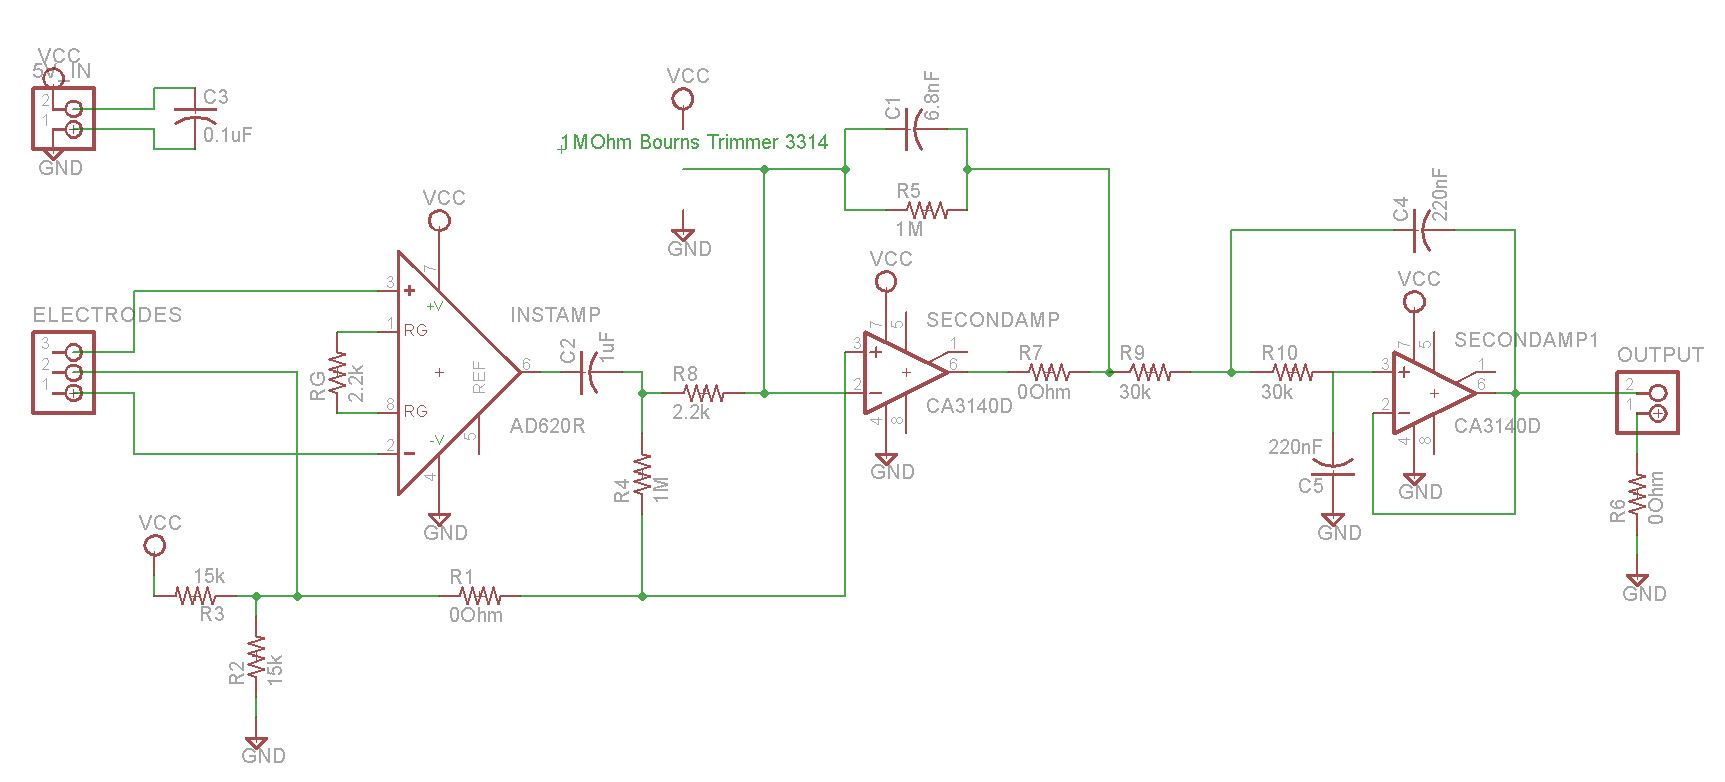 60hz Low Pass Filter Lpf Ecg Circuit Diagram This Is The New Schematic Of Fab With 50hz Active